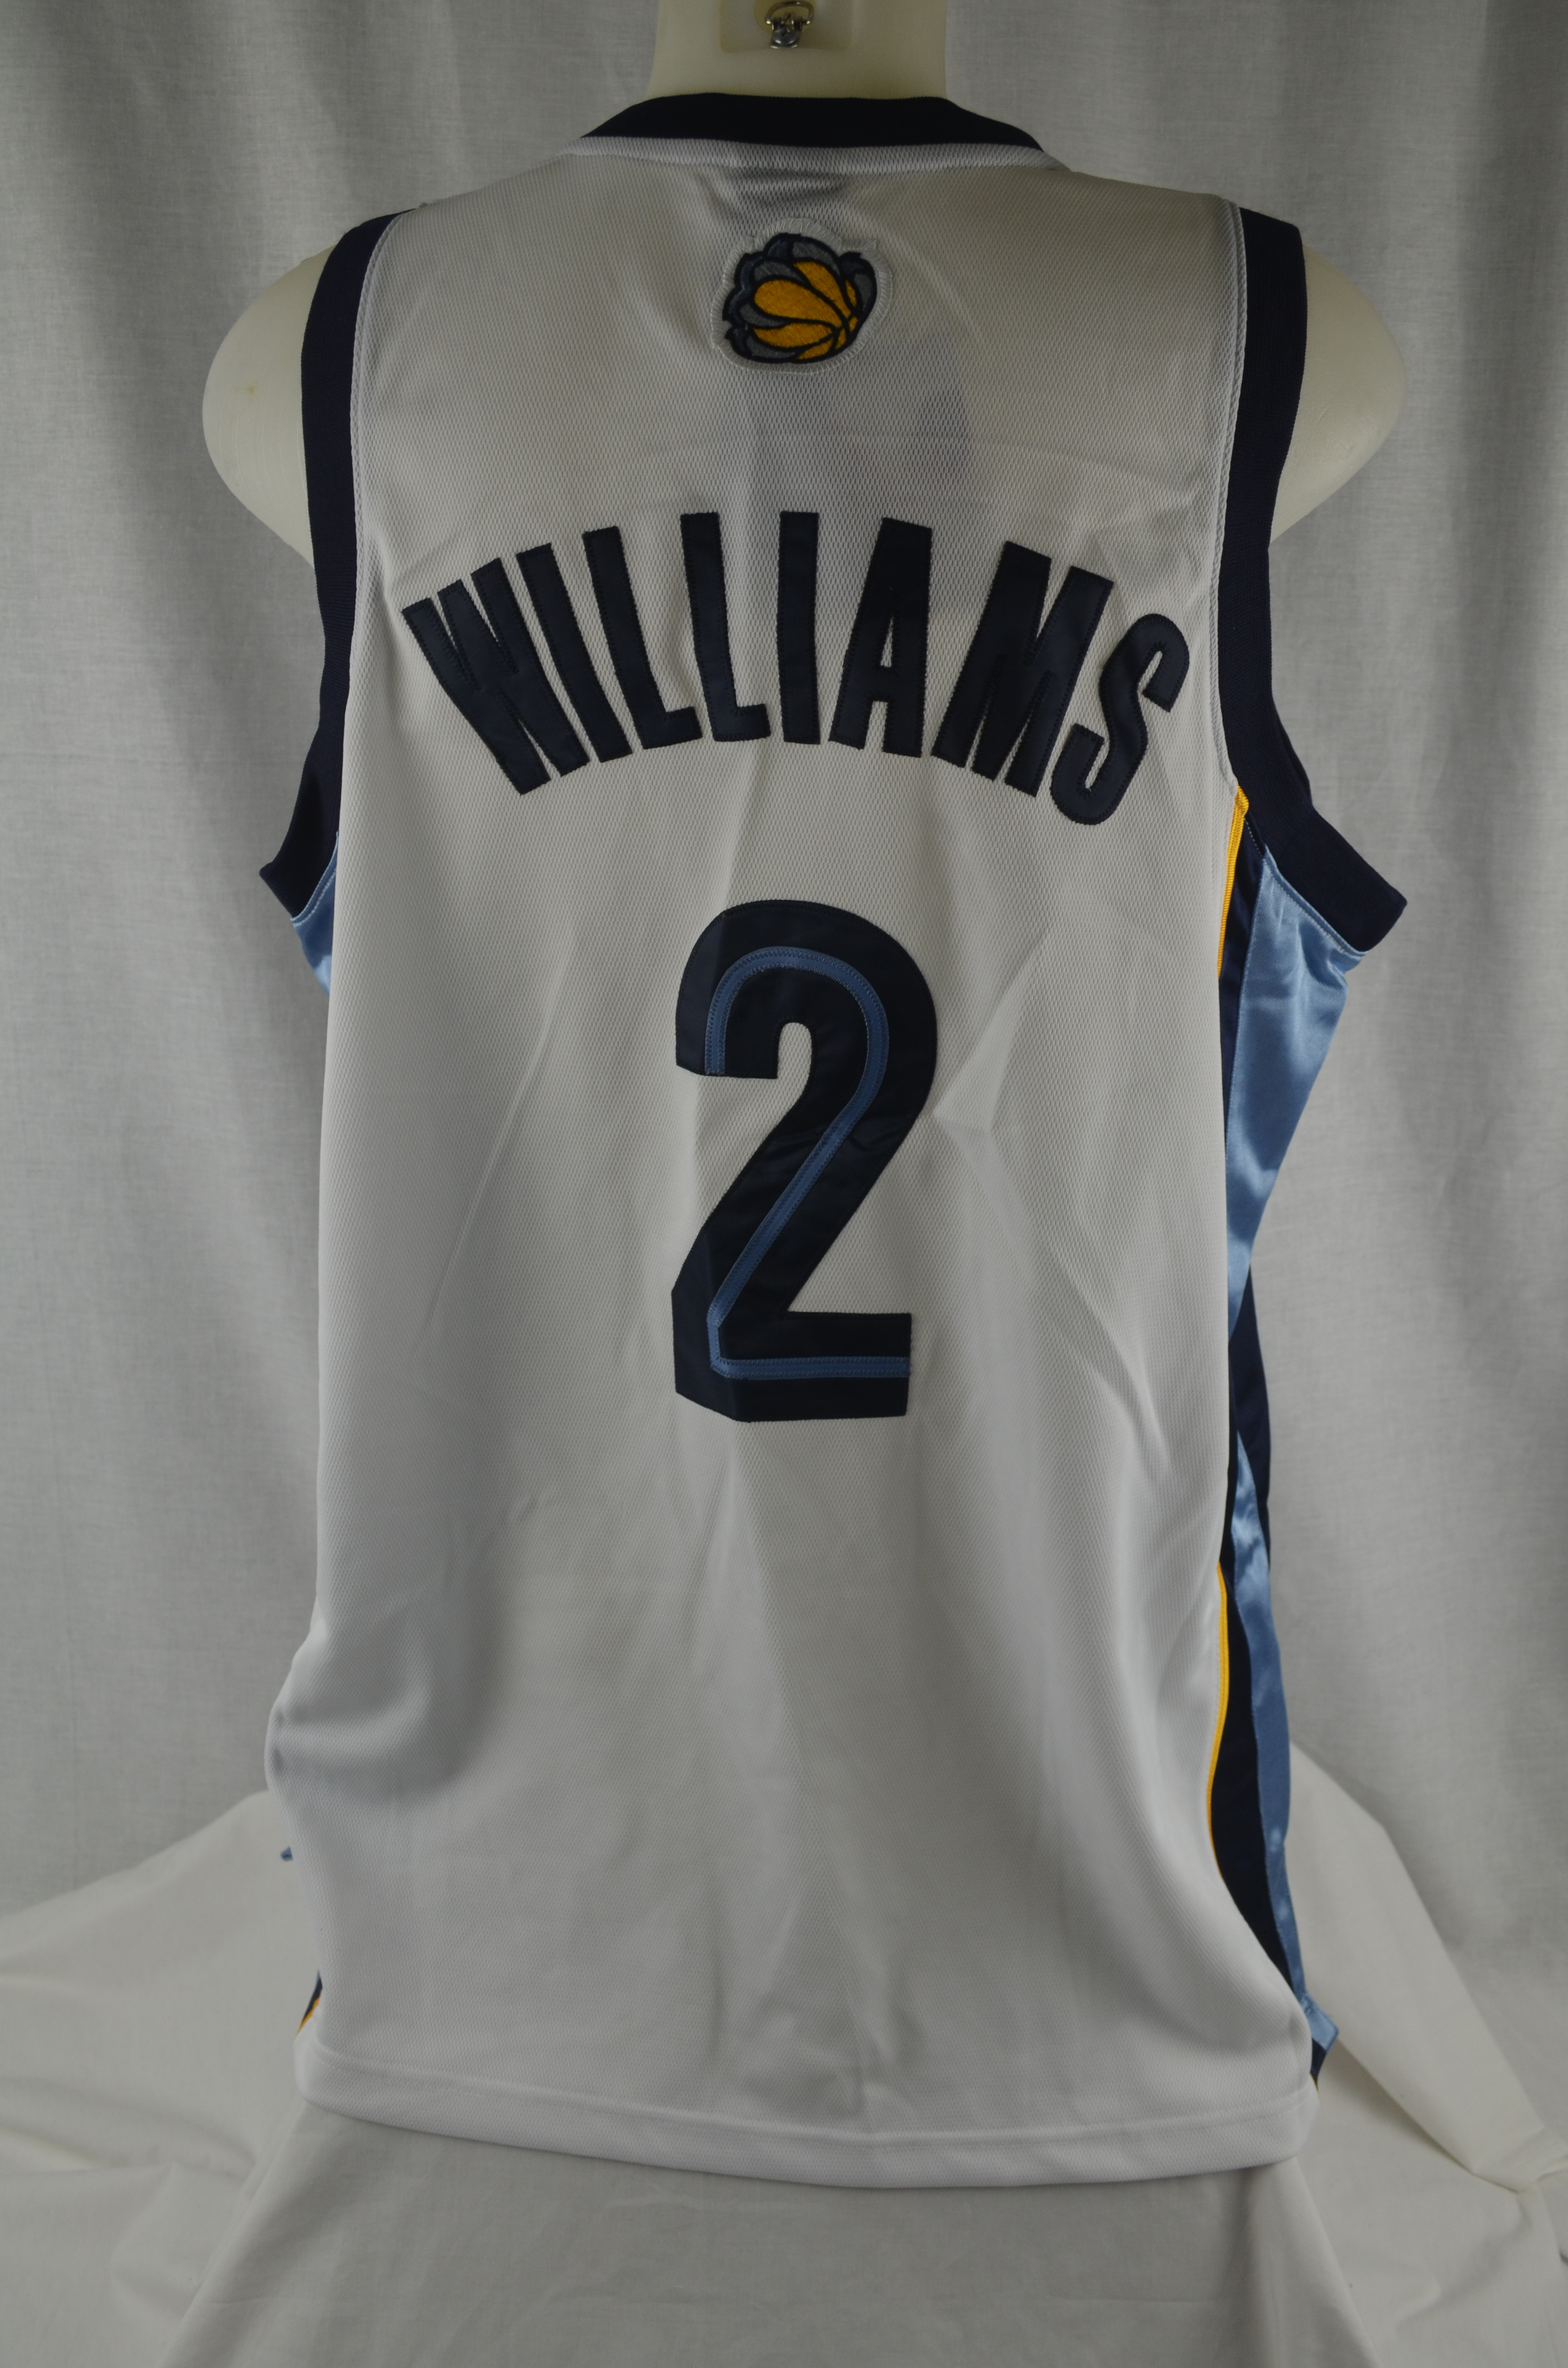 2143092ad Jason Williams Memphis Grizzlies Authentic Reebok Basketball Jersey ...